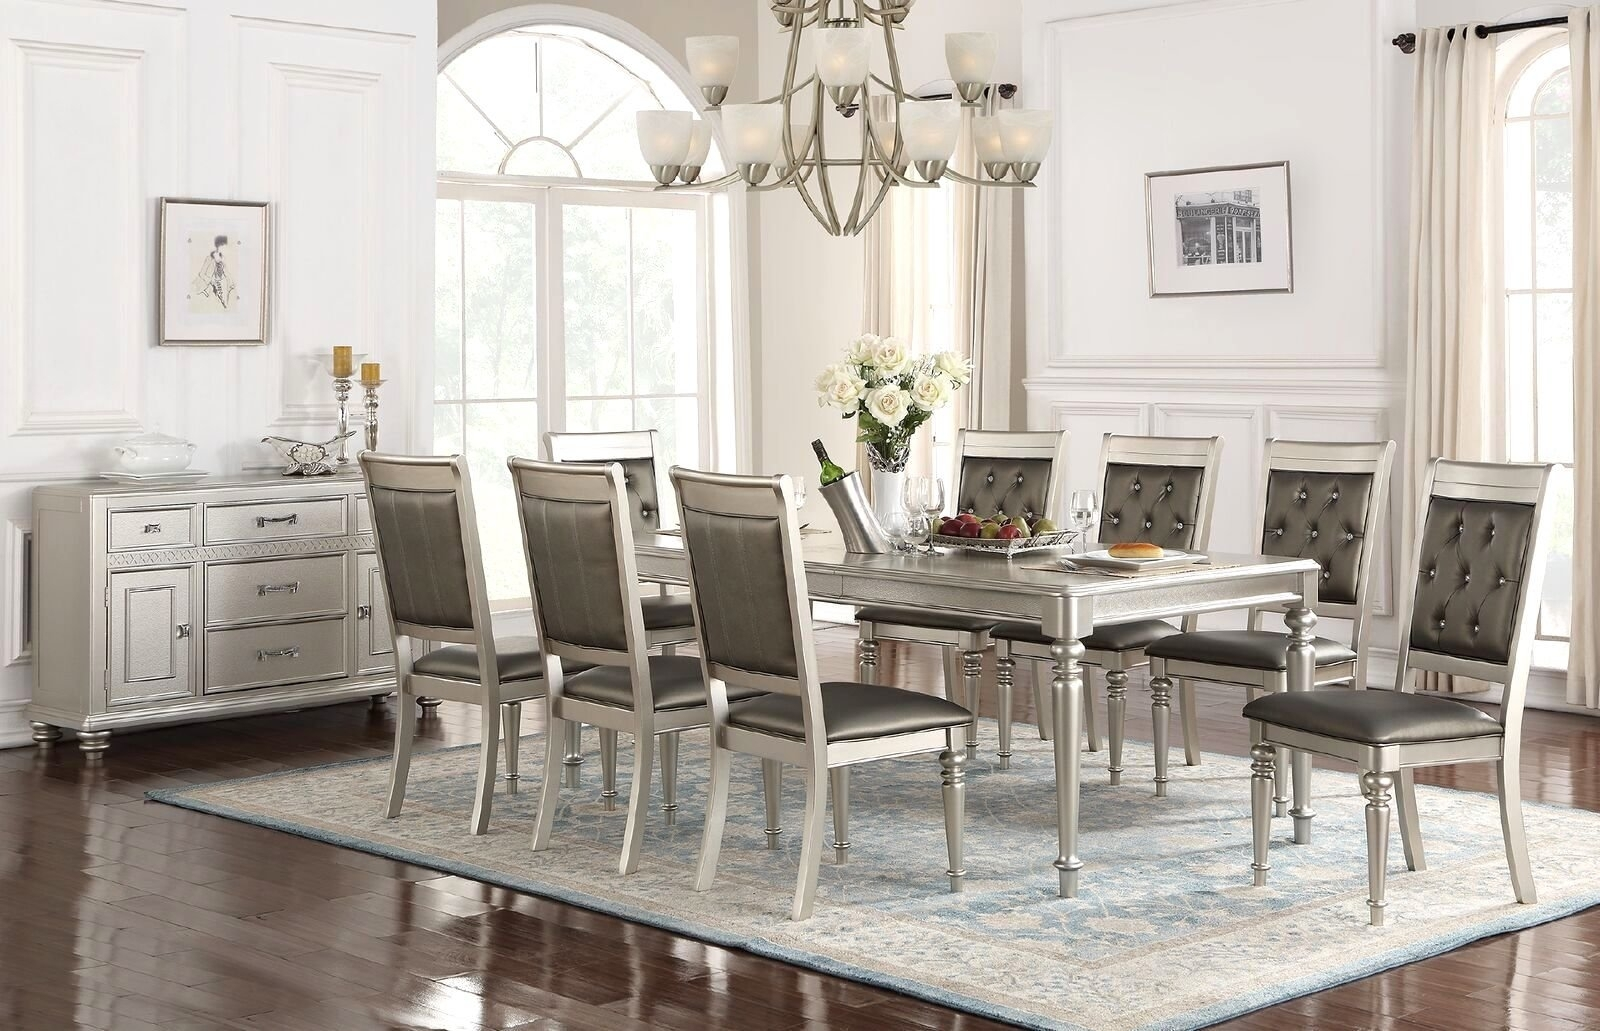 9 Piece Dining Sets You'll Love | Wayfair Throughout 2018 Rocco 7 Piece Extension Dining Sets (Image 2 of 20)